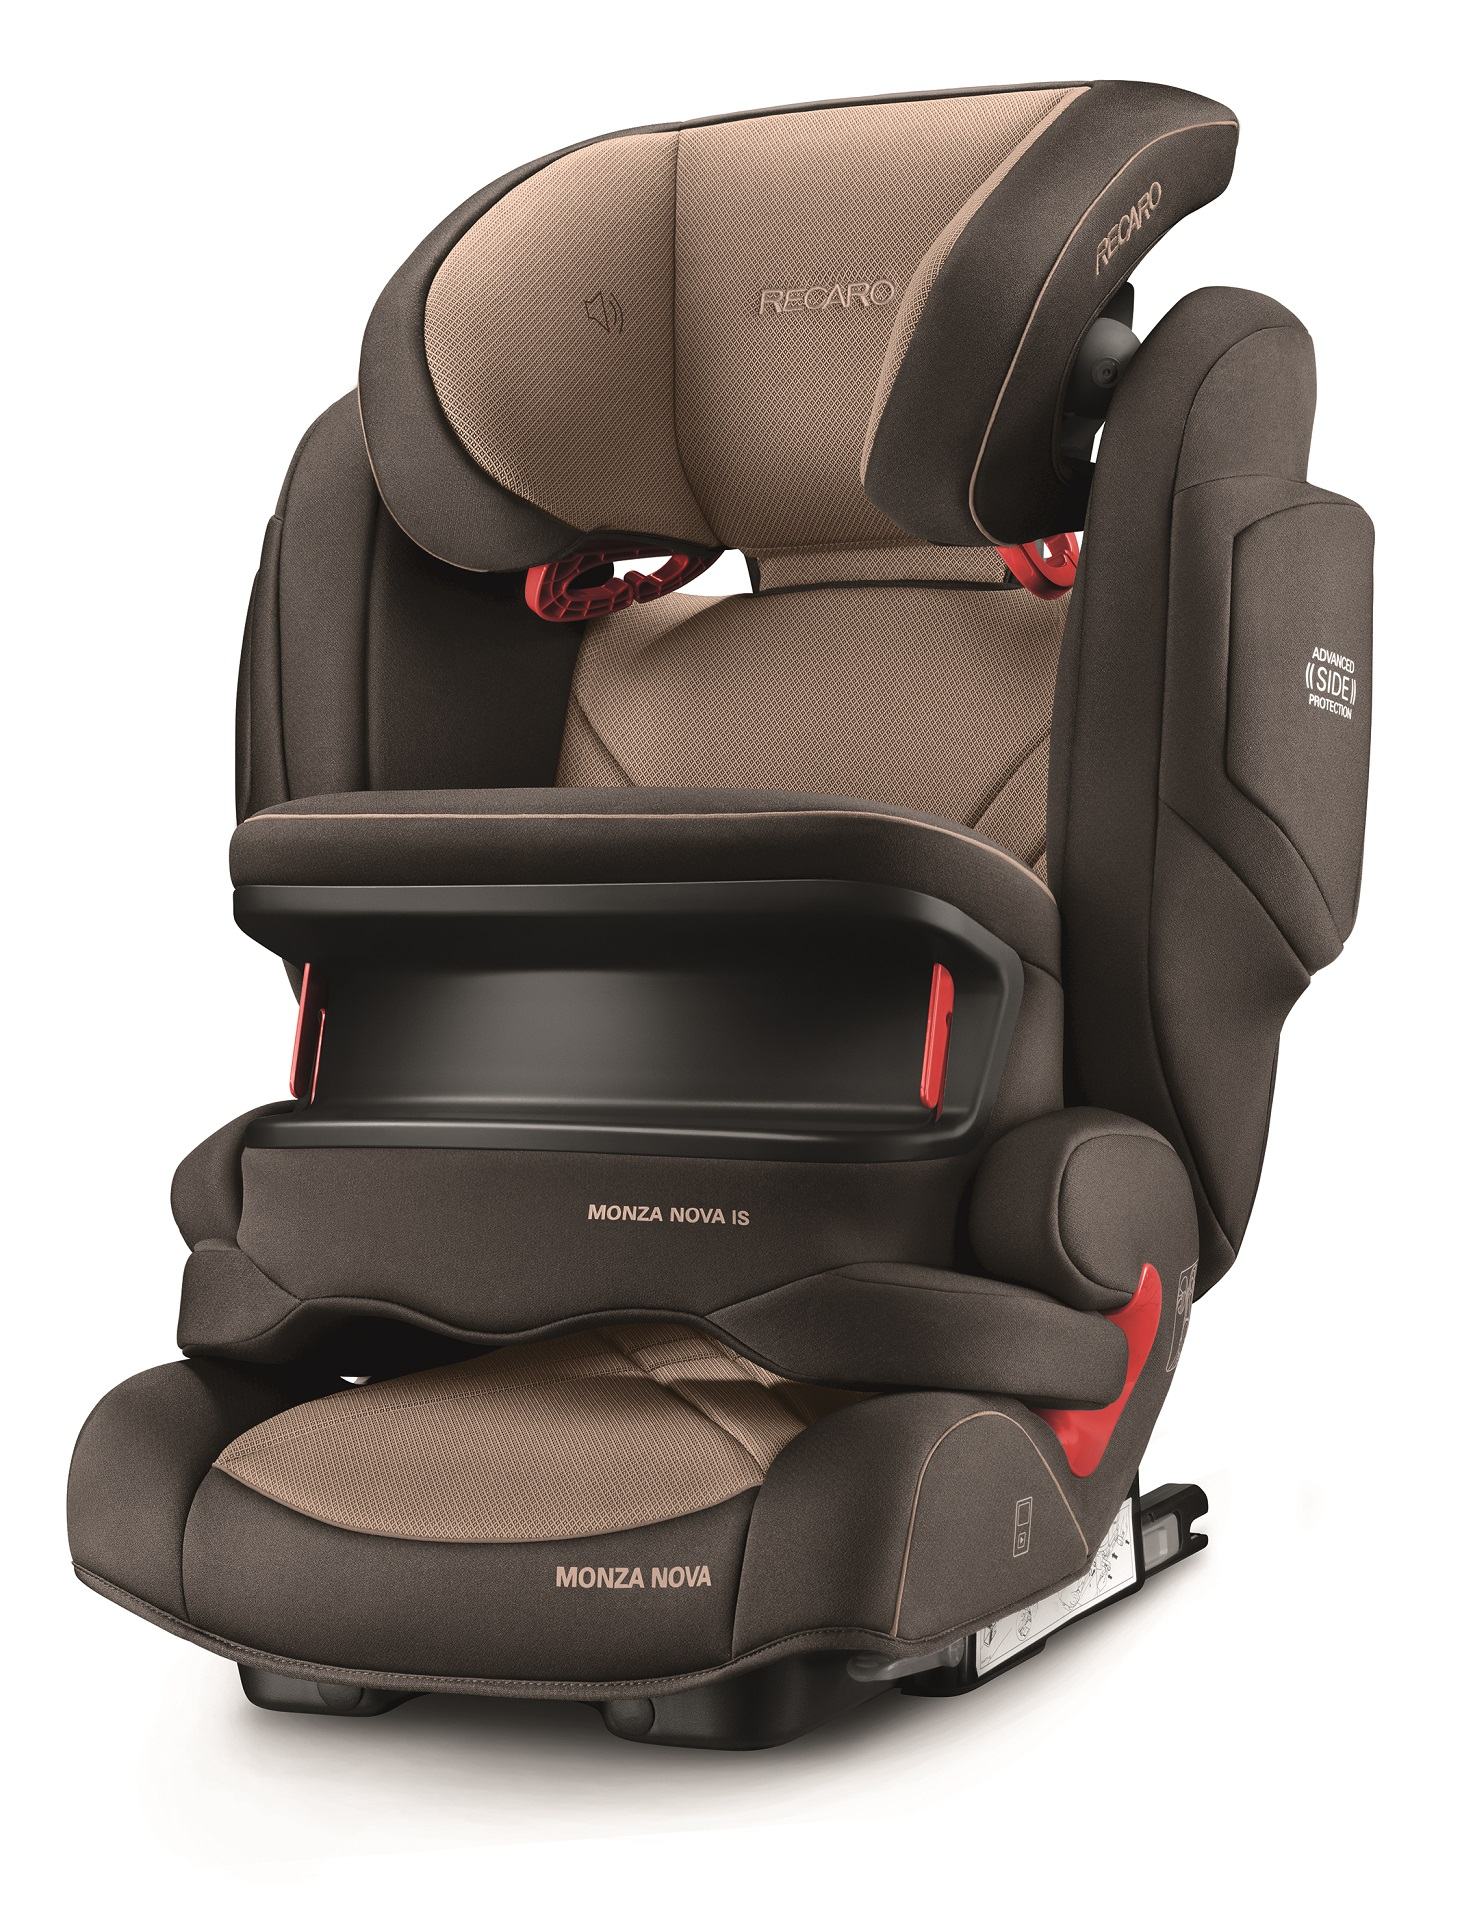 recaro child car seat monza nova is seatfix 2018 dakar sand buy at kidsroom car seats. Black Bedroom Furniture Sets. Home Design Ideas